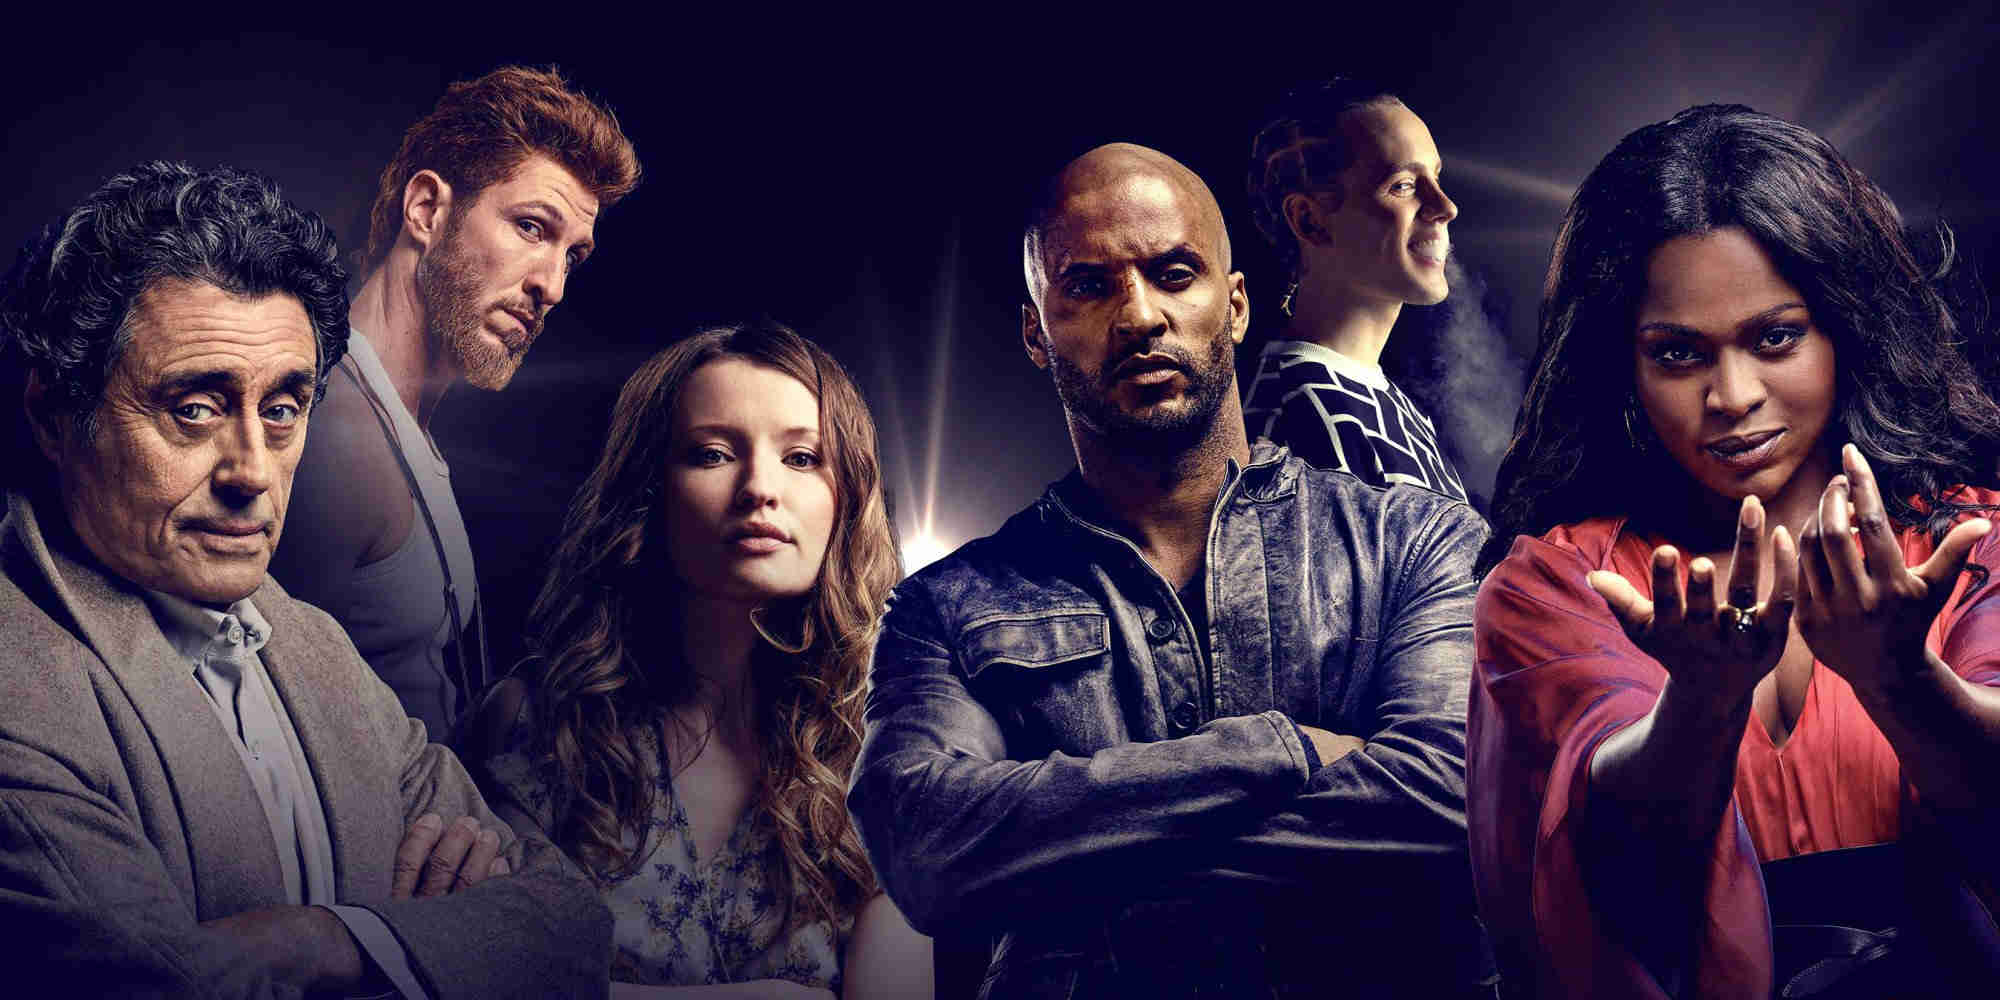 American Gods 2 Starts Production with Announcement Video